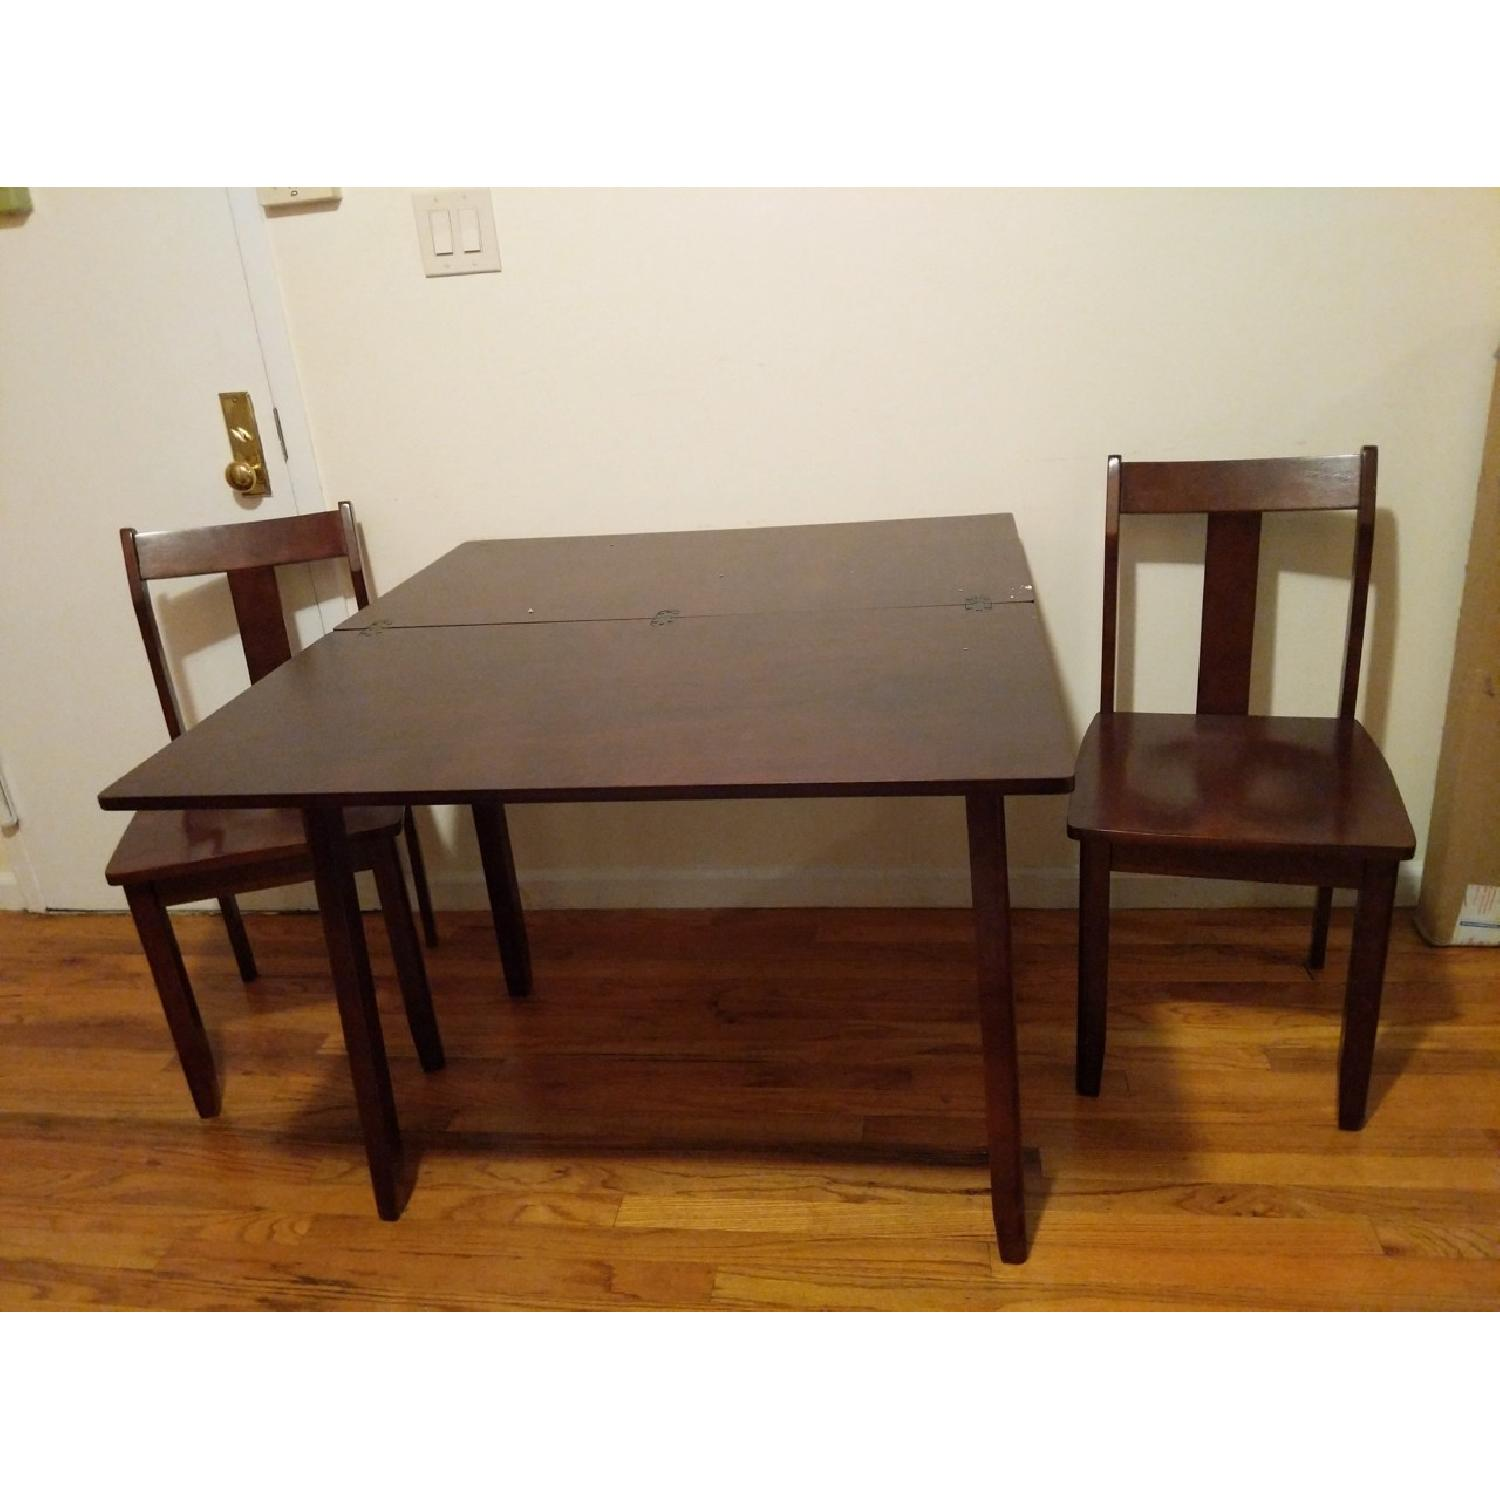 Expandable Brown Dining Table w/ 2 Chairs-0